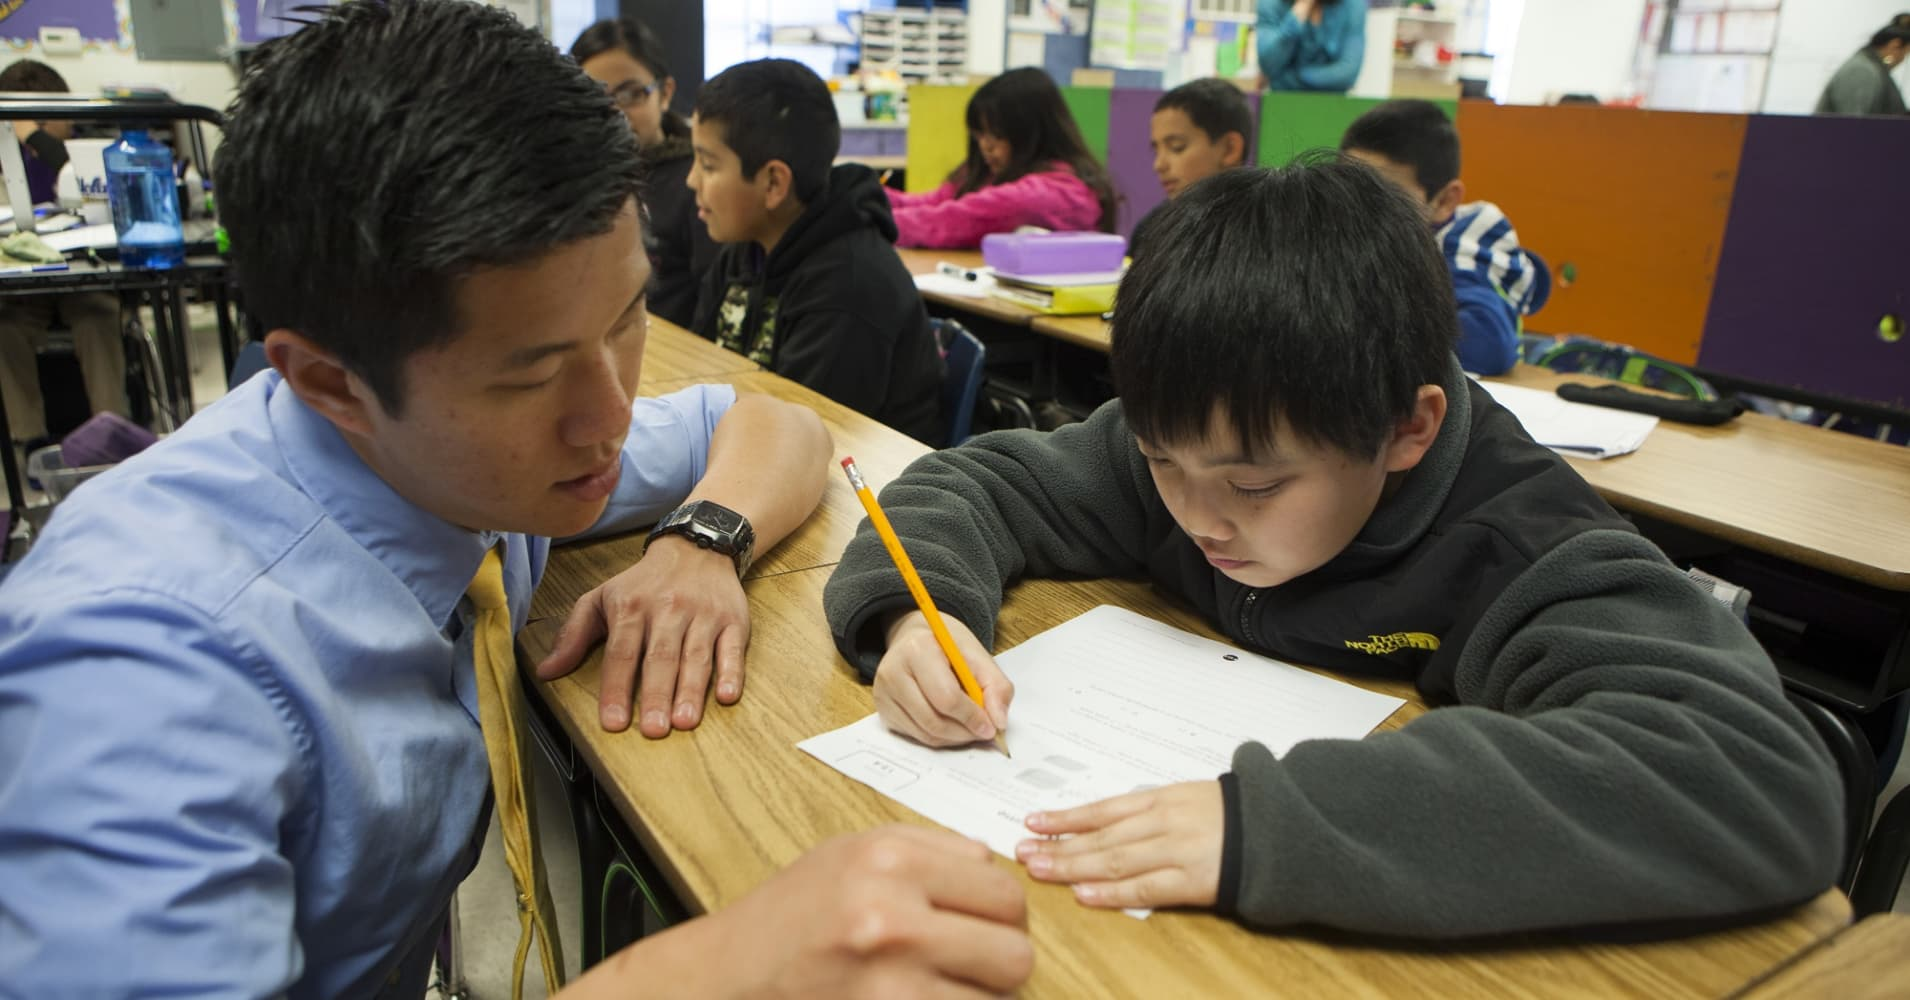 Fifth grade science and math teacher helps a student in San Jose, California.